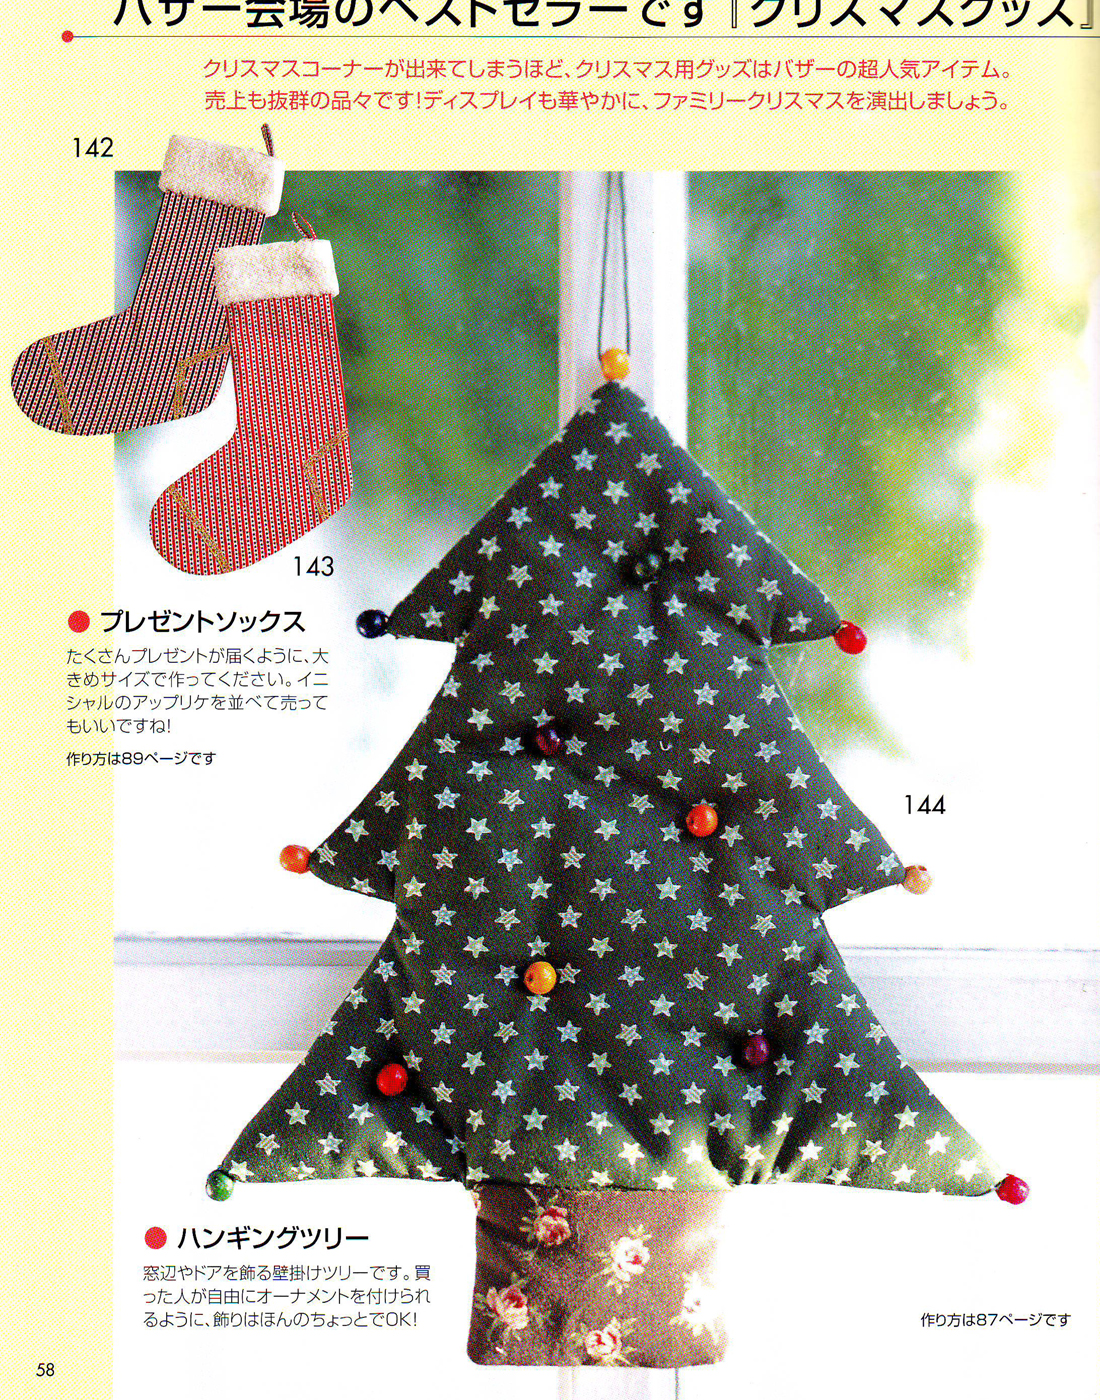 Sweet Tidings: Free Japanese patterns for Christmas bazaar crafts